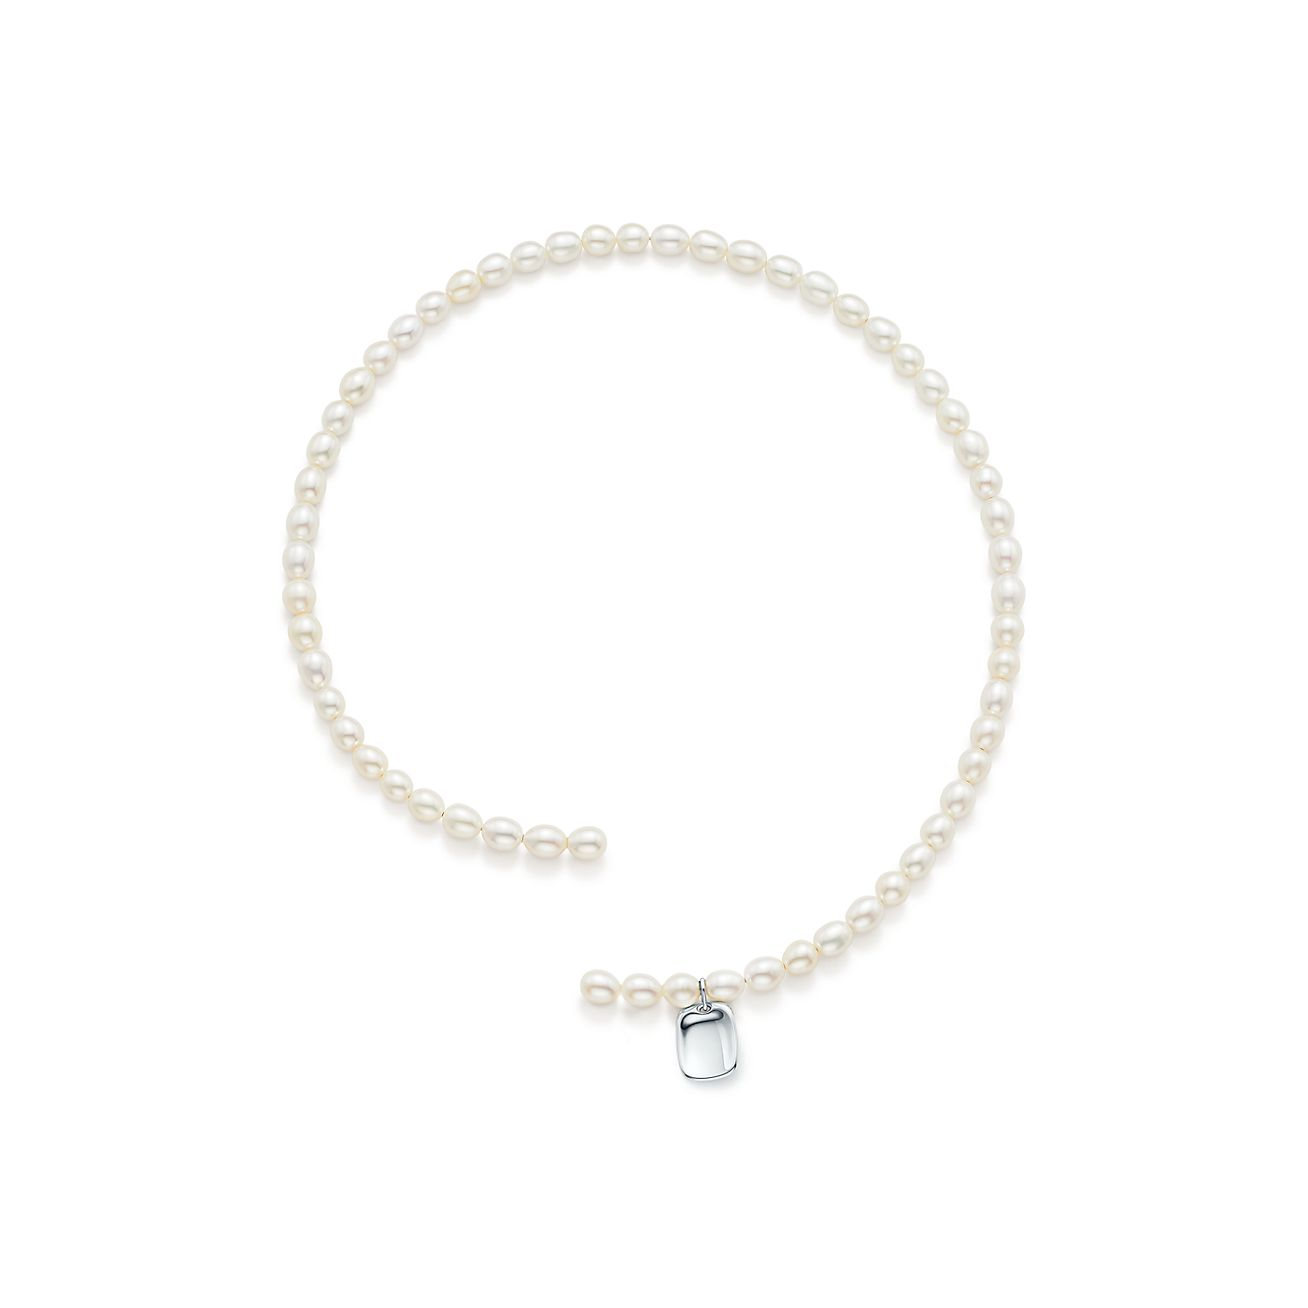 Elsa Peretti freshwater pearl necklace with sterling silver tag charm Tiffany & Co. 5jeC0V